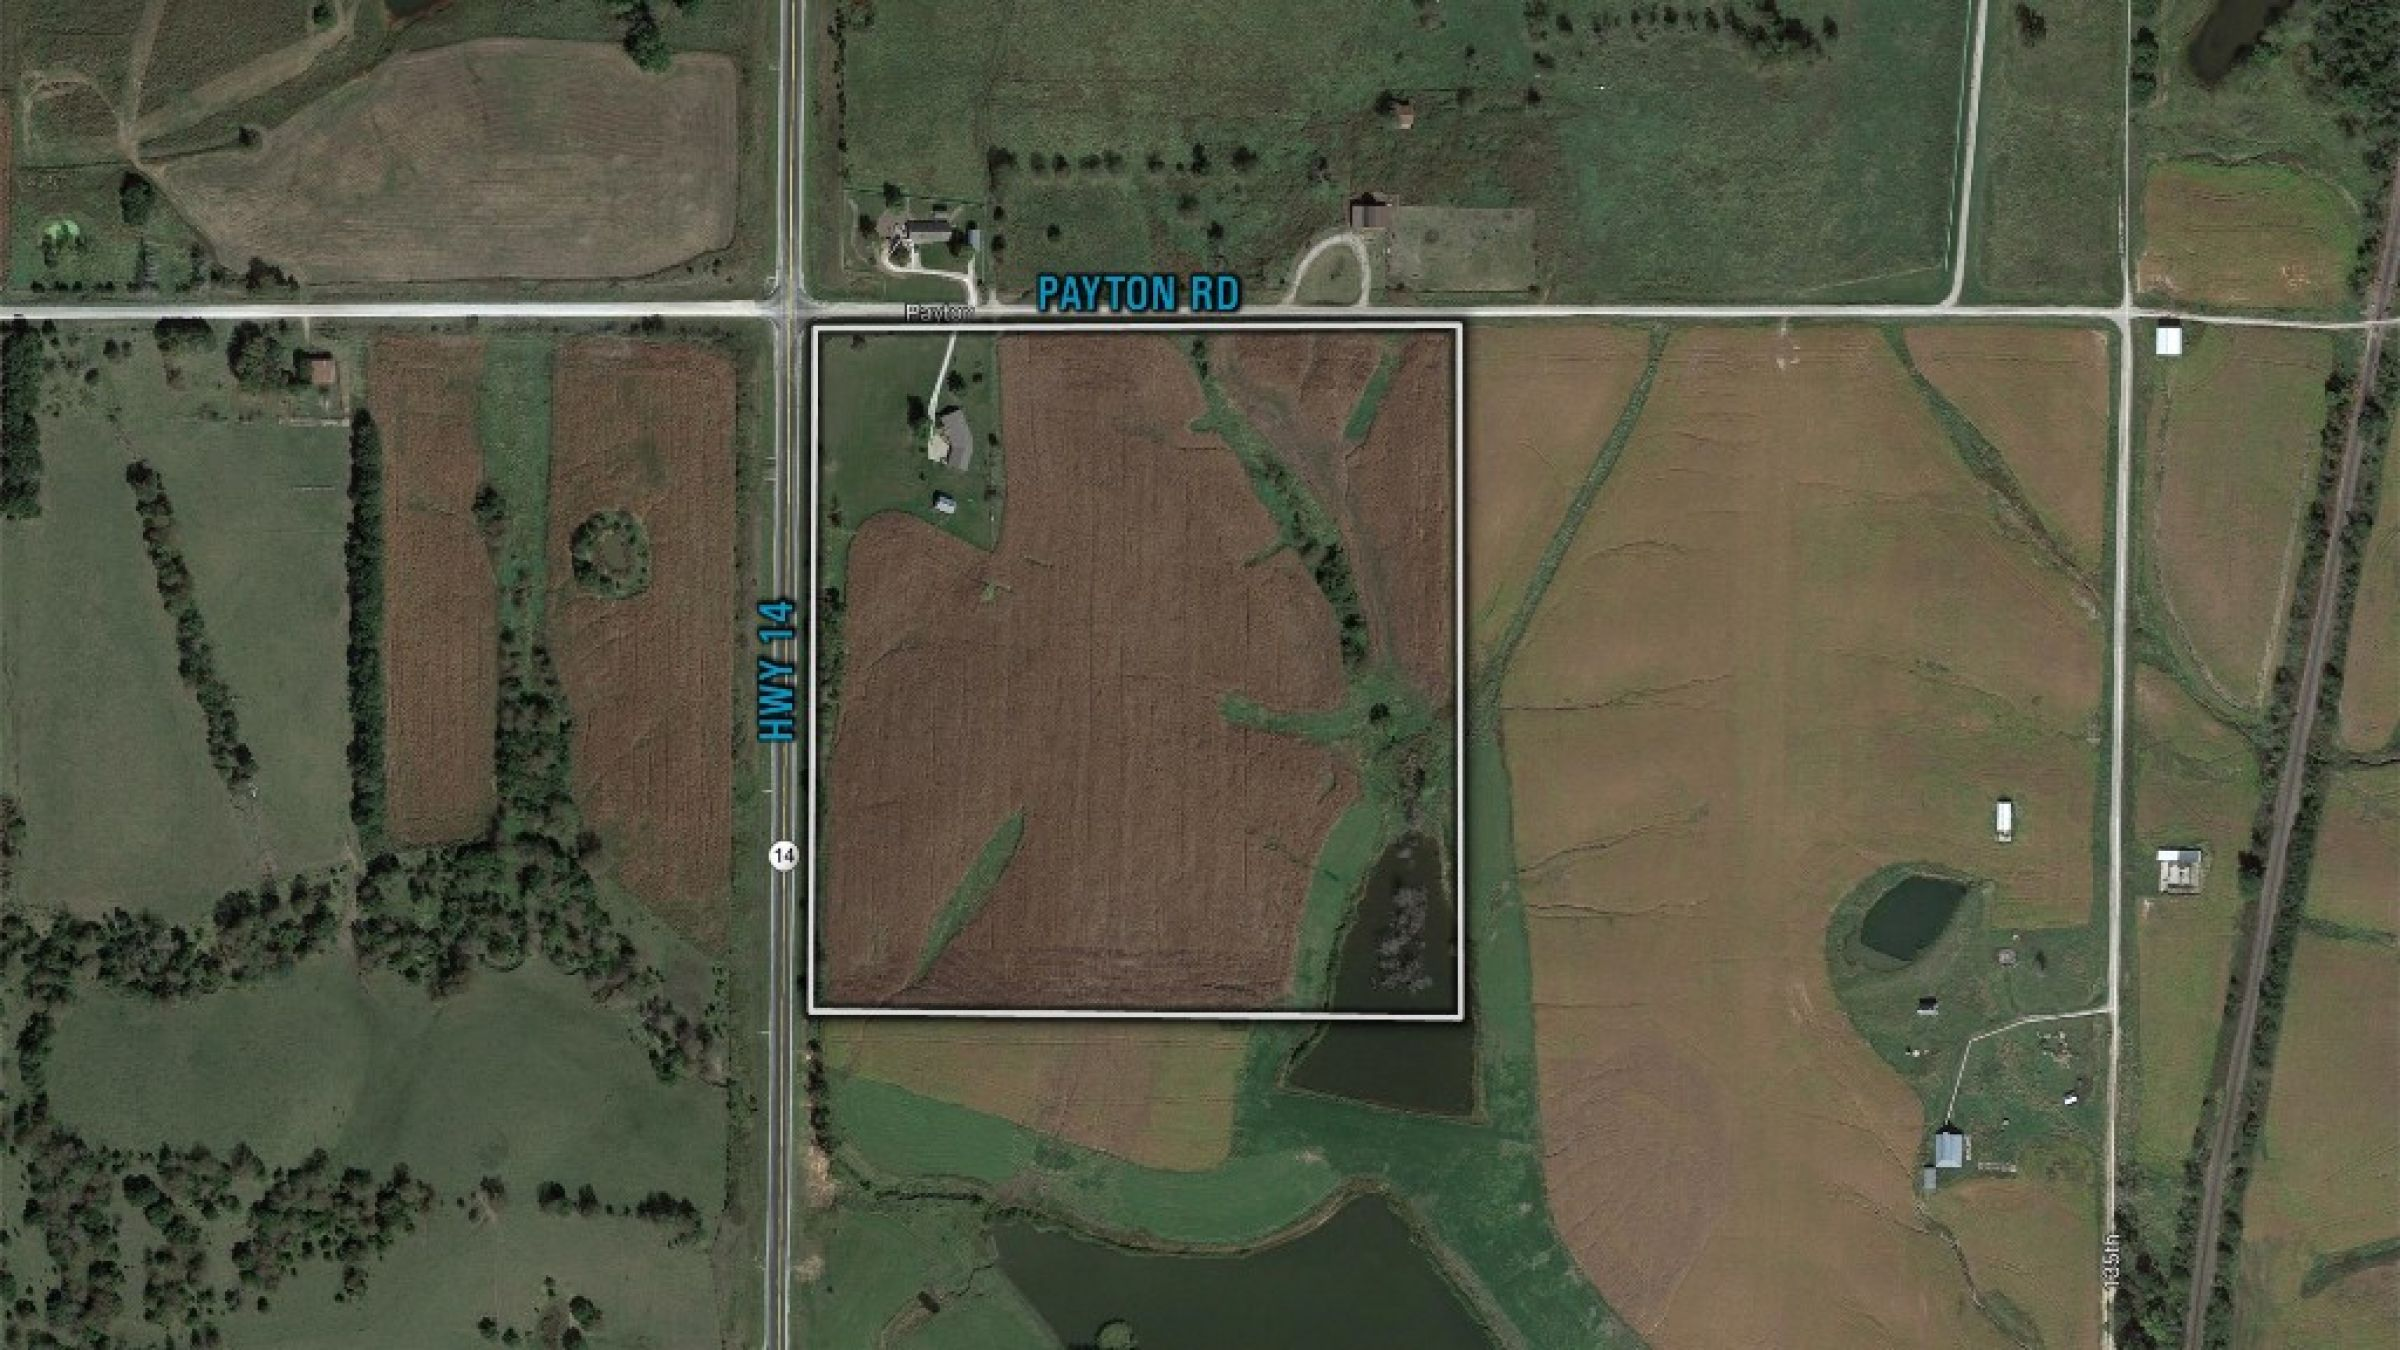 residential-land-wayne-county-iowa-35-acres-listing-number-15183-3-2020-09-24-201140.jpg